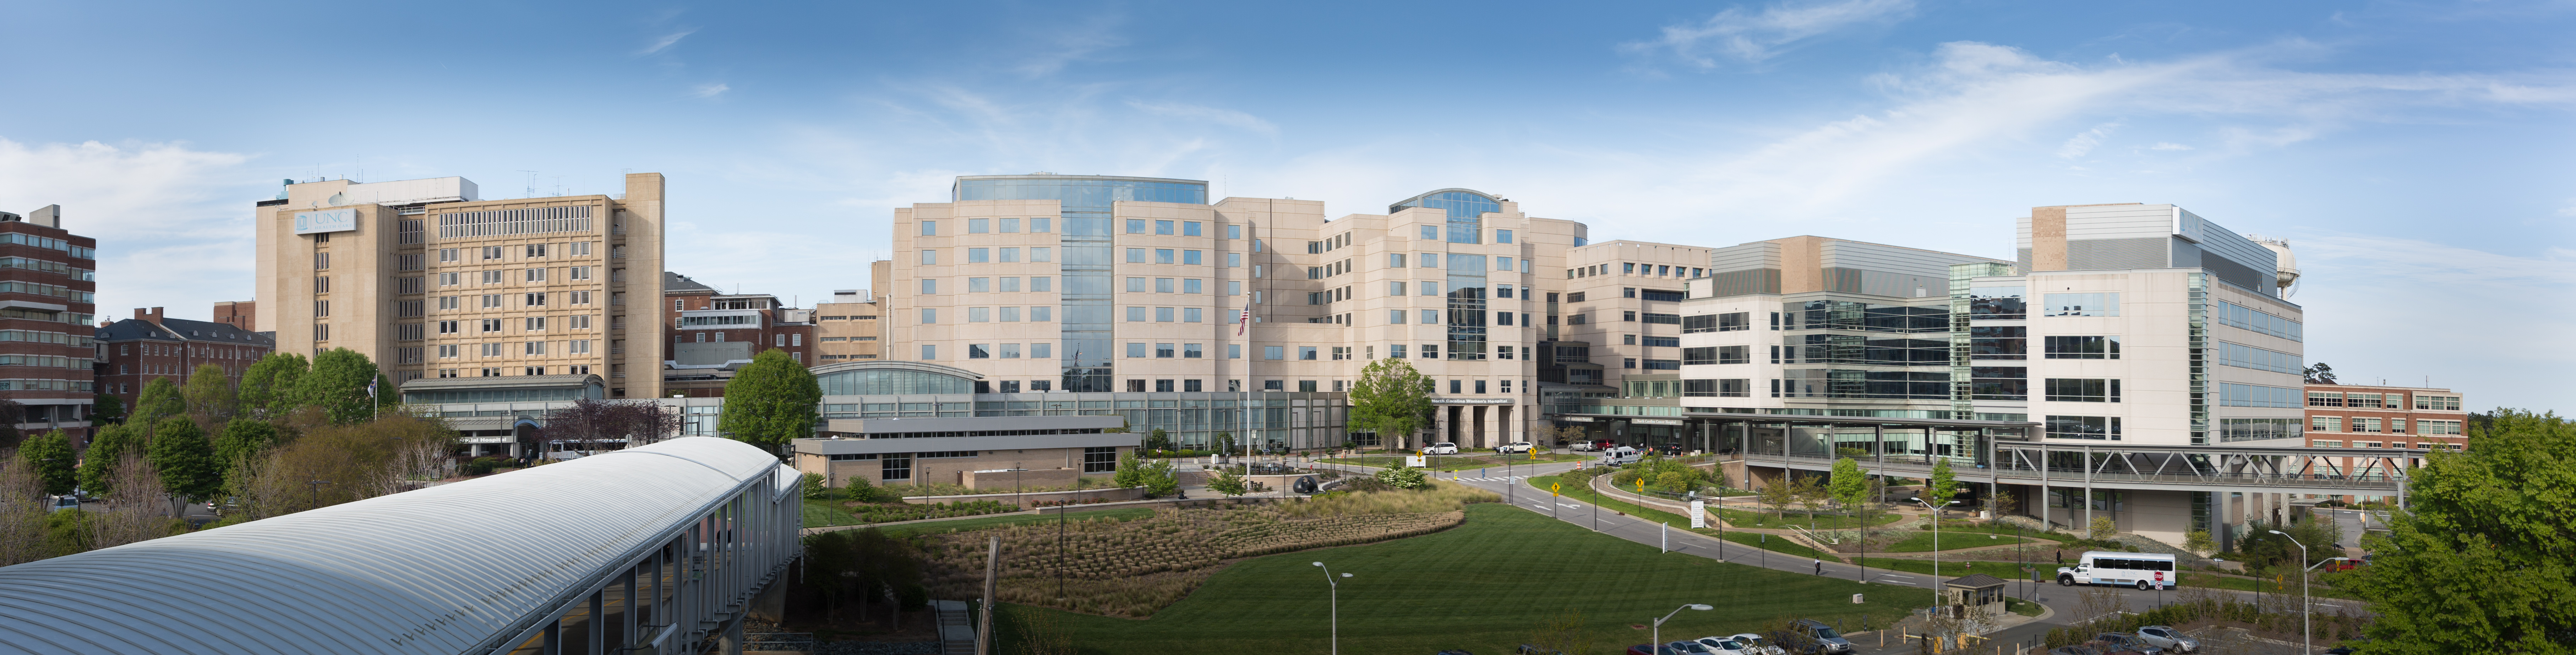 UNC Center for Health Innovation